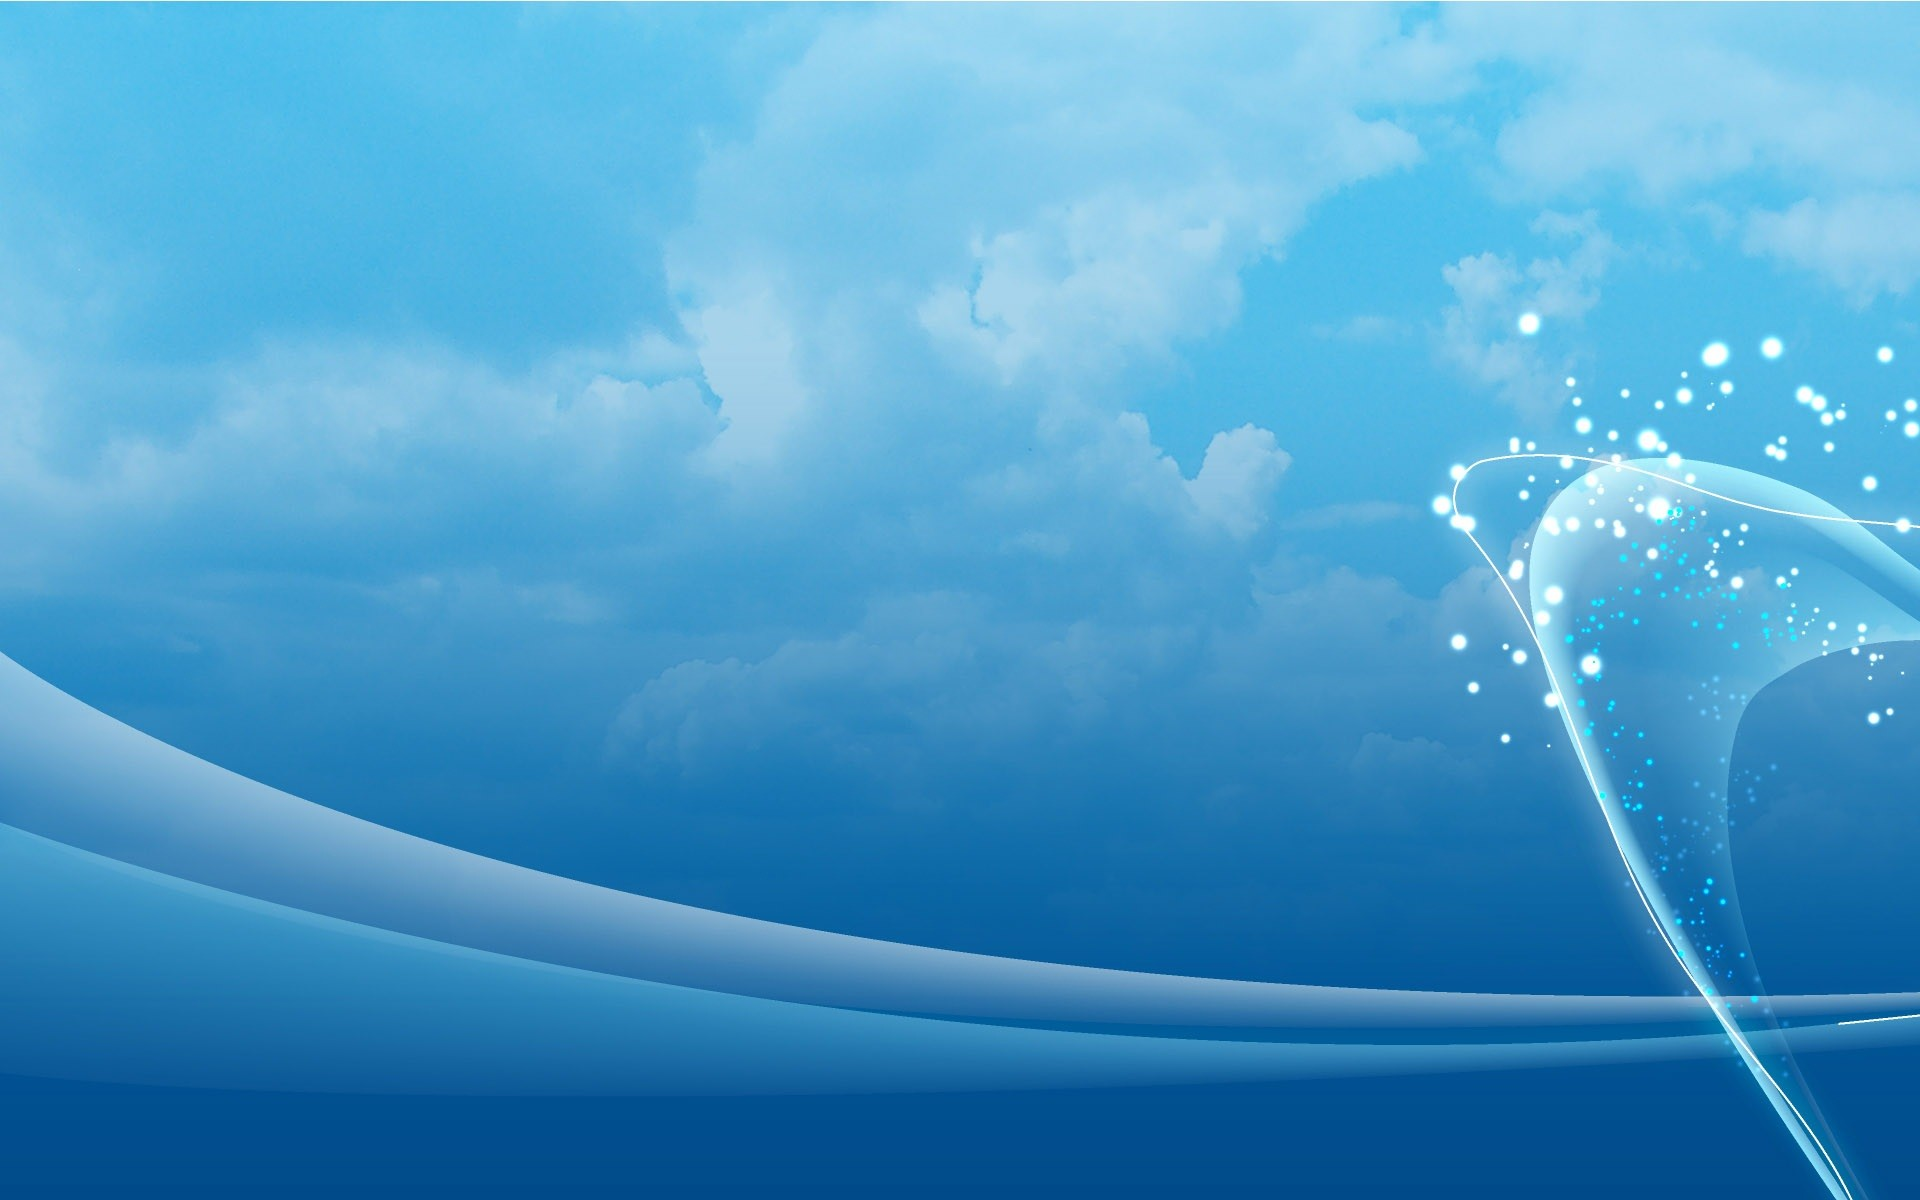 Abstract Blue Background HD Wallpaper